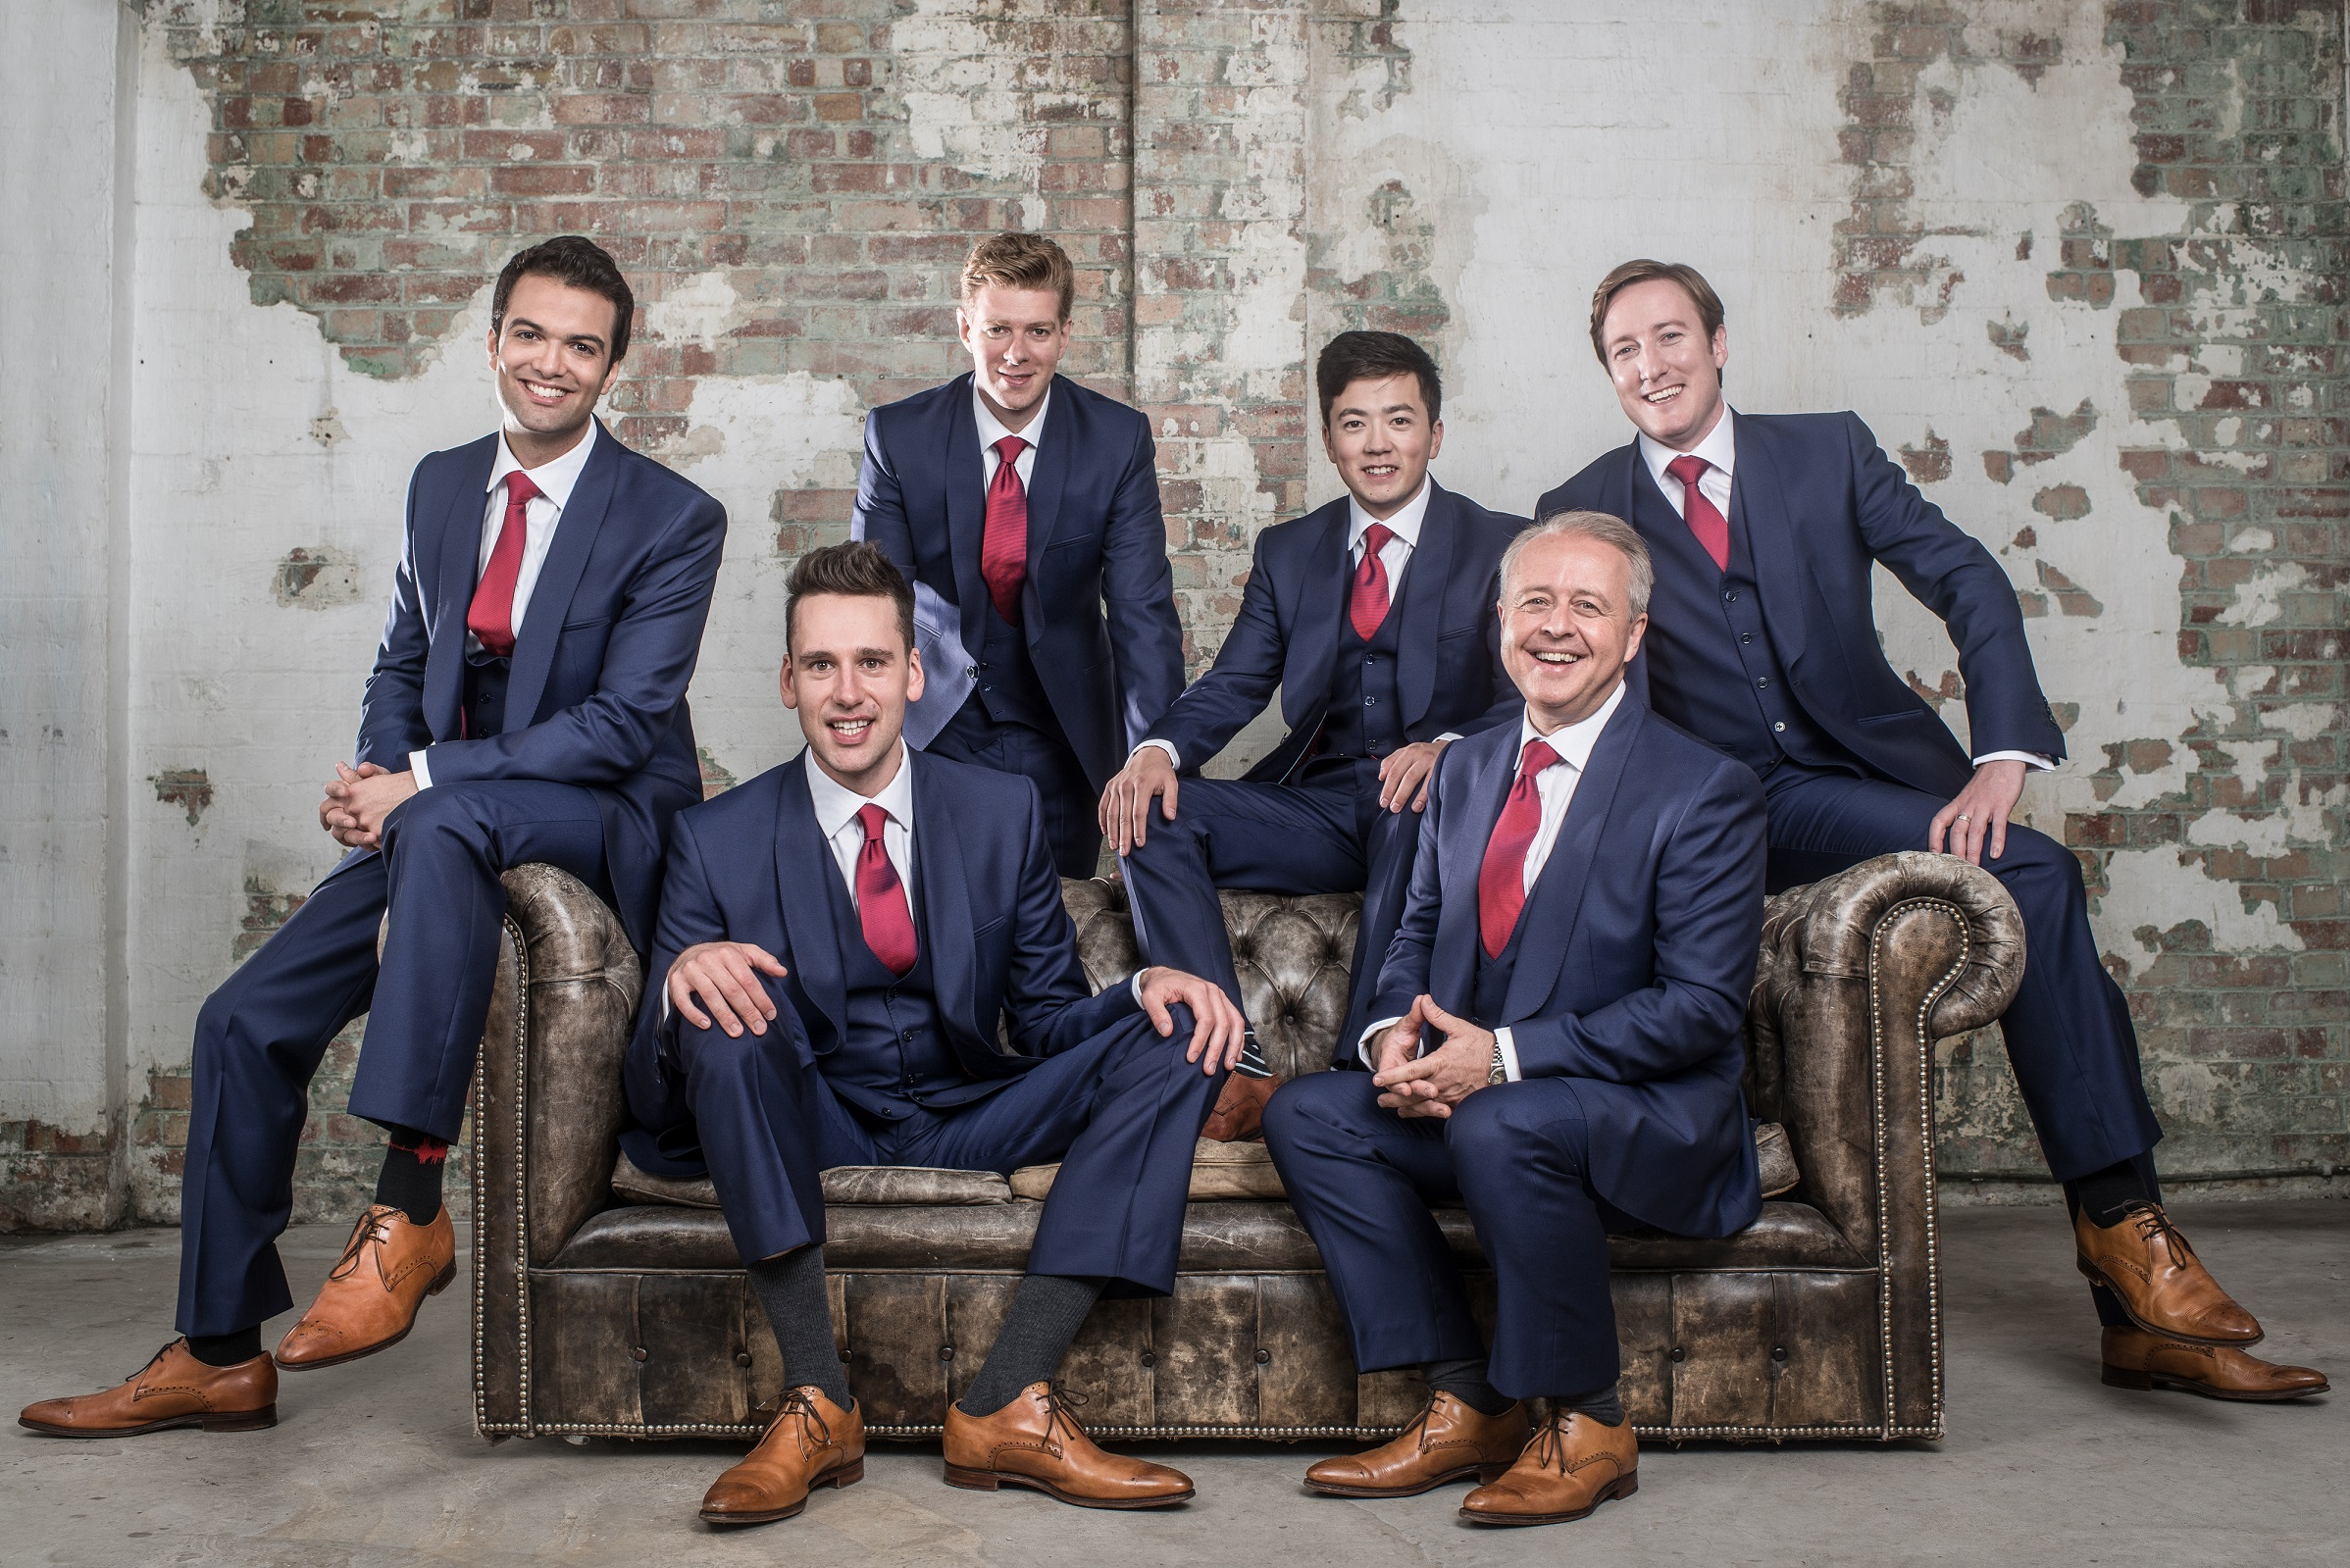 The King's Singers, Credit: Chris O'Donovan